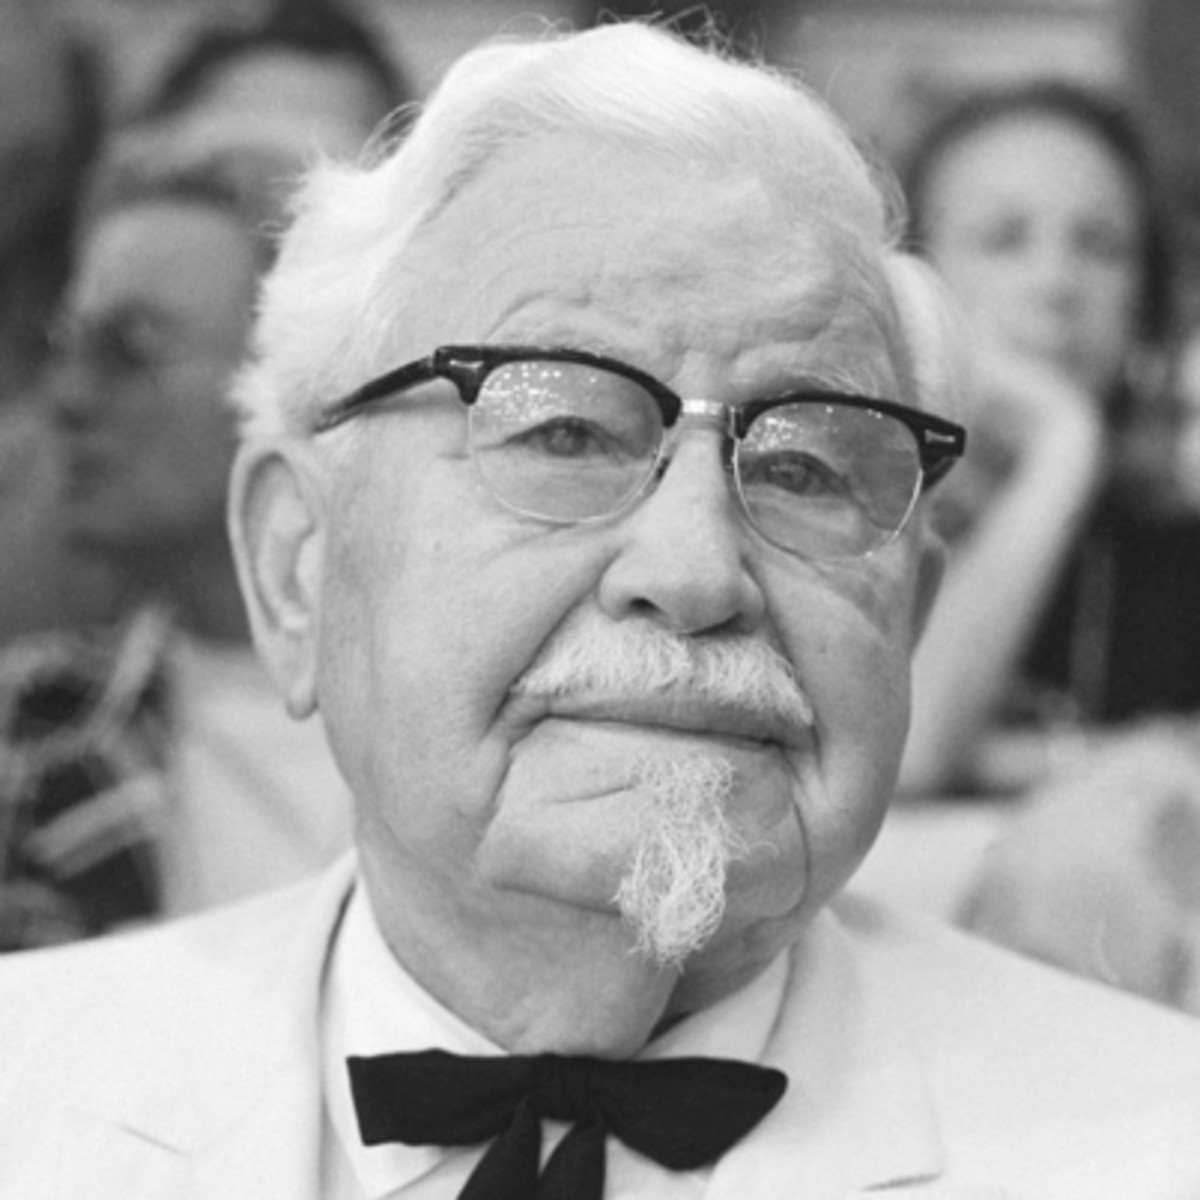 colonel-sanders-at-democratic-national-convention.jpg